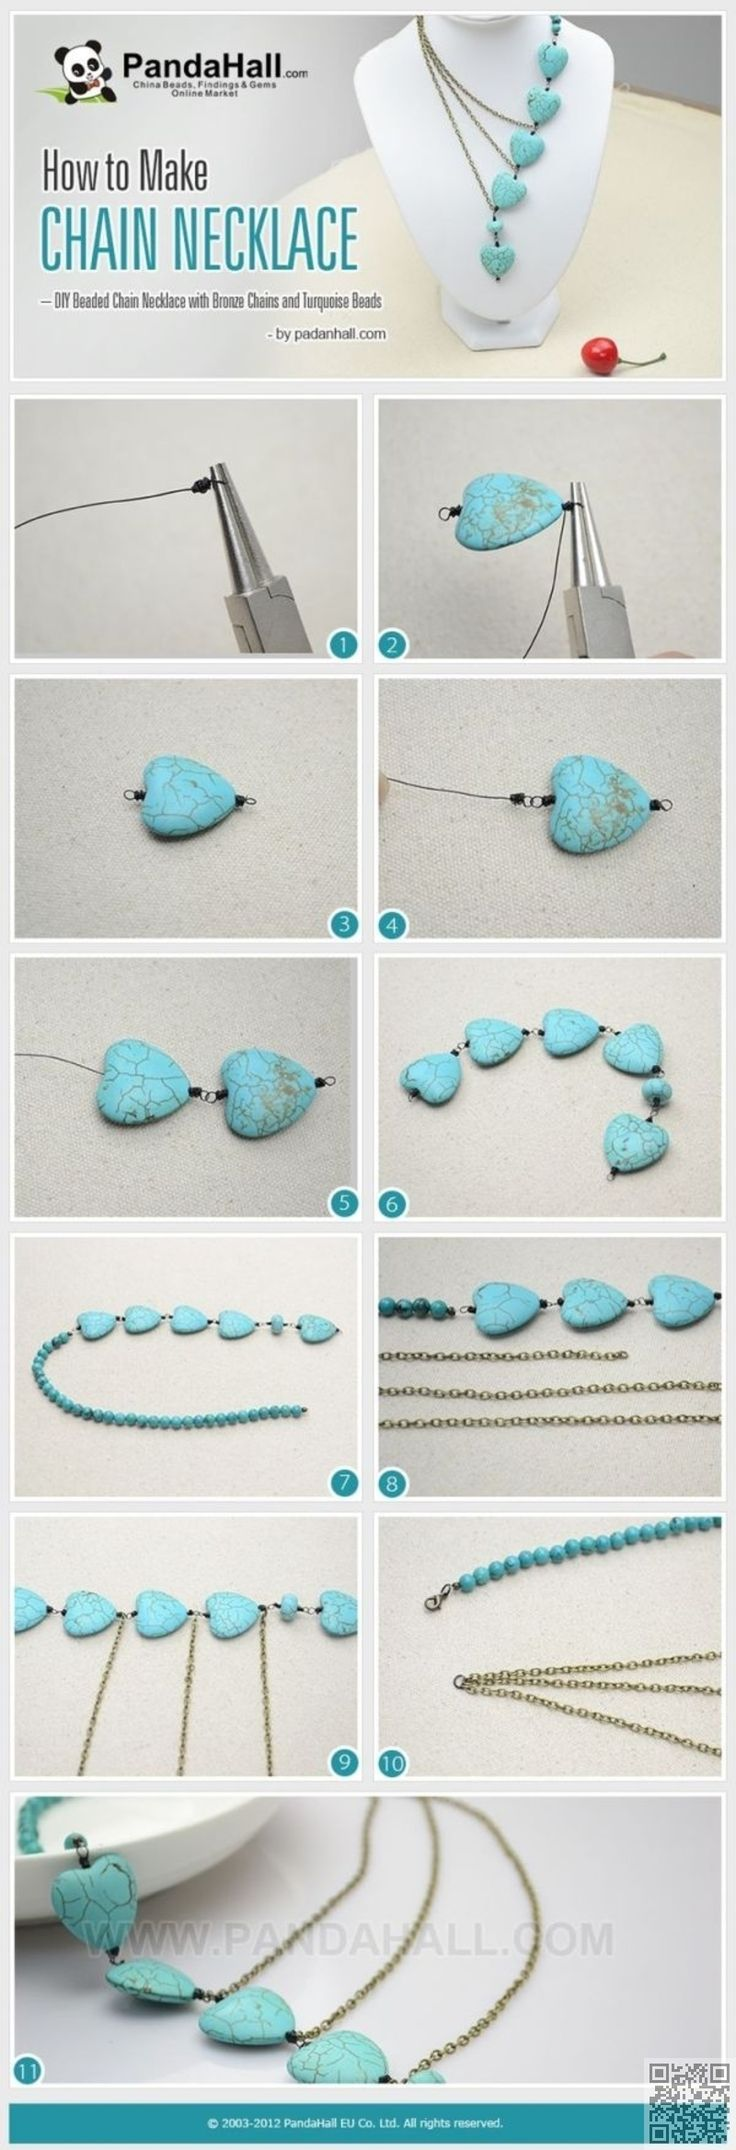 6. How to Make a #Chain Necklace - 39 Fabulous Diy #Necklaces That Will Rock Your World ... → DIY #Necklace